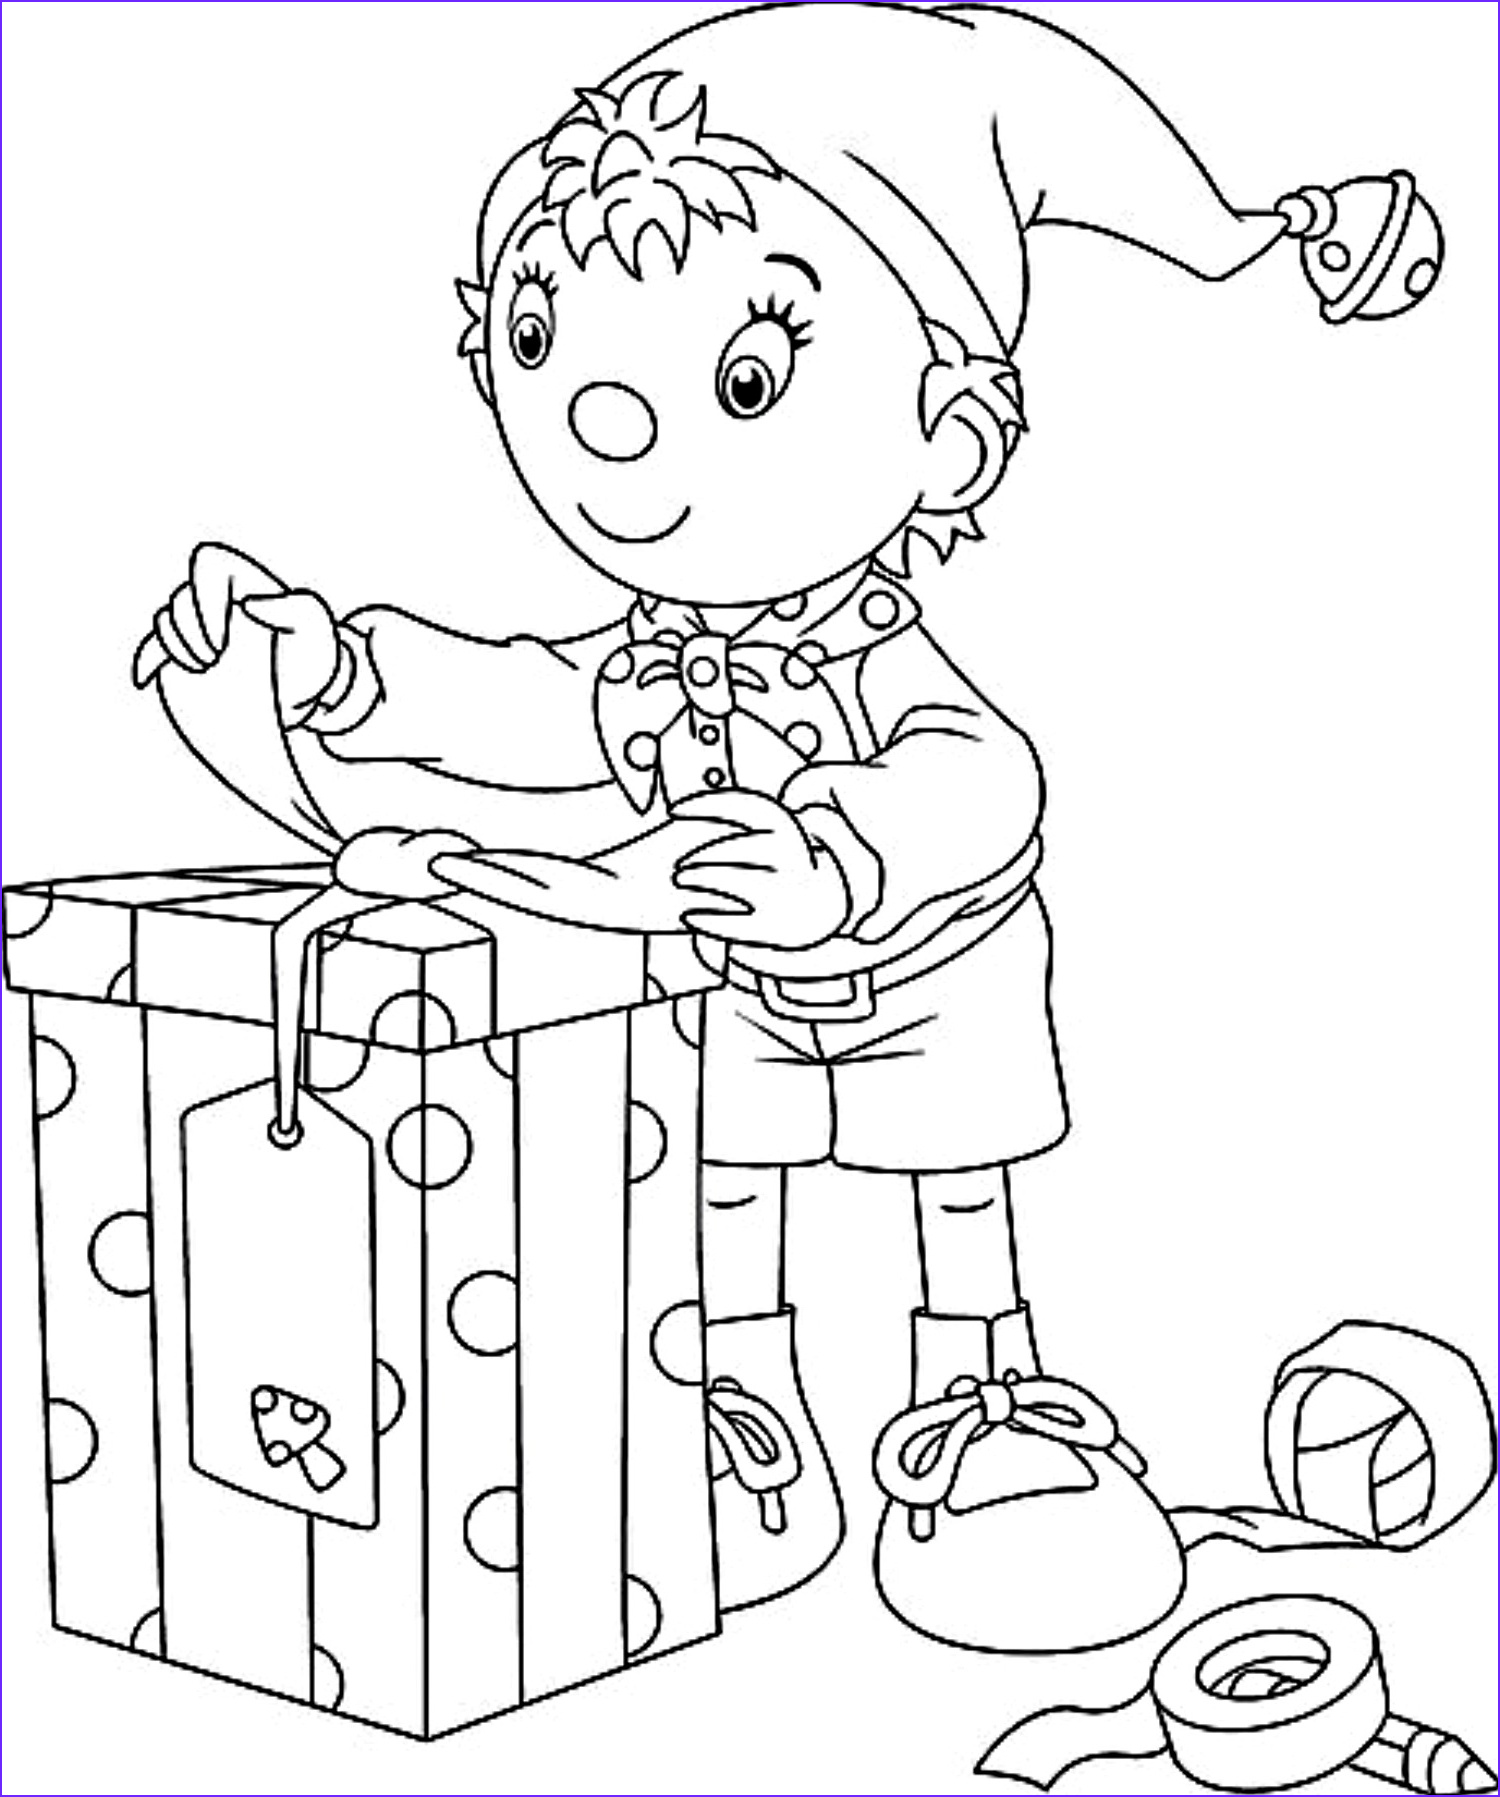 Coloring Pictures for Kids Elegant Images Free Printable Kindergarten Coloring Pages for Kids